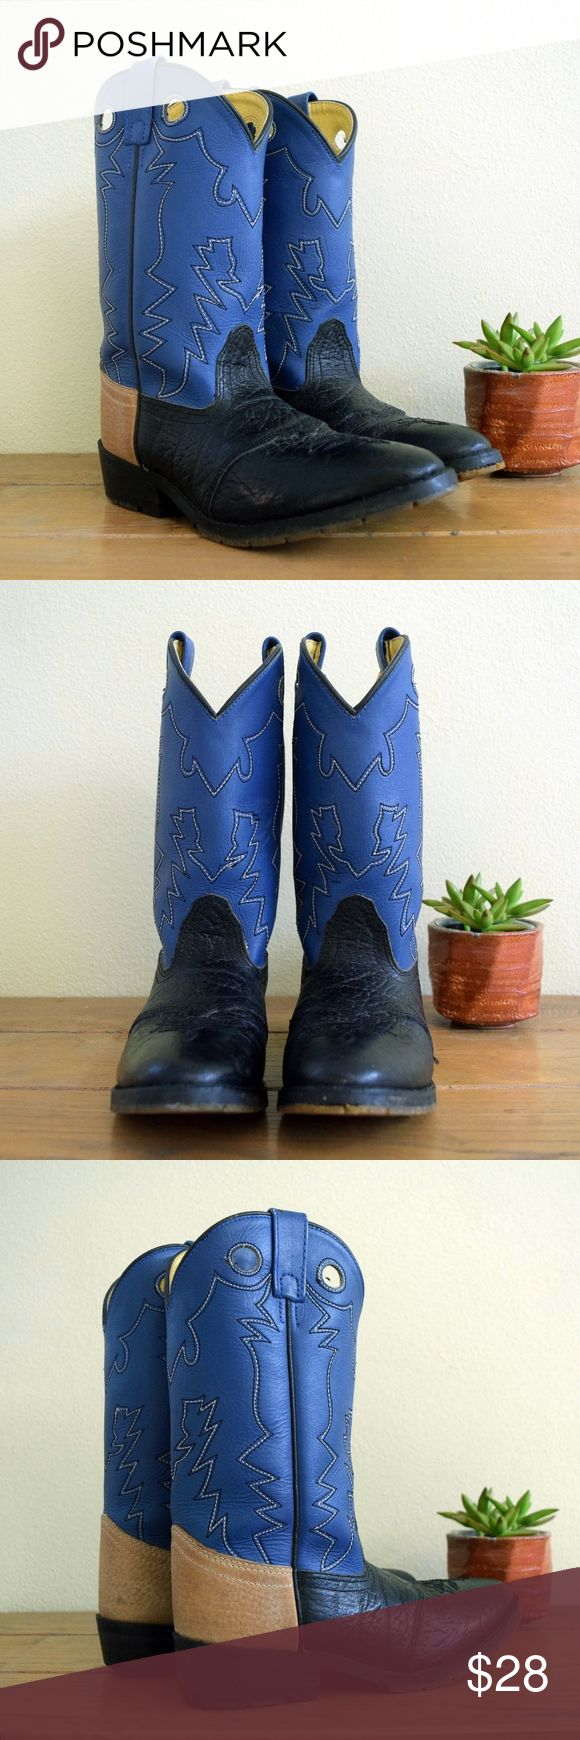 "Kids Vintage 4 Youth Double H Roper Cowboy Boots Kids roper cowboy boots for your little buckaroo in a youth size 4 (average age 8 years, detailed measurements below) by Double H. The foot is textured black genuine leather with a nice scalloped overlay. The tops are medium blue genuine leather with three-stitch designs, pull straps and pull holes. The lining and insoles are faux leather. Rubber soles with a lot of grip. Some of the rubber grip worn off on the left boot heel.  Insole- 9.25""…"